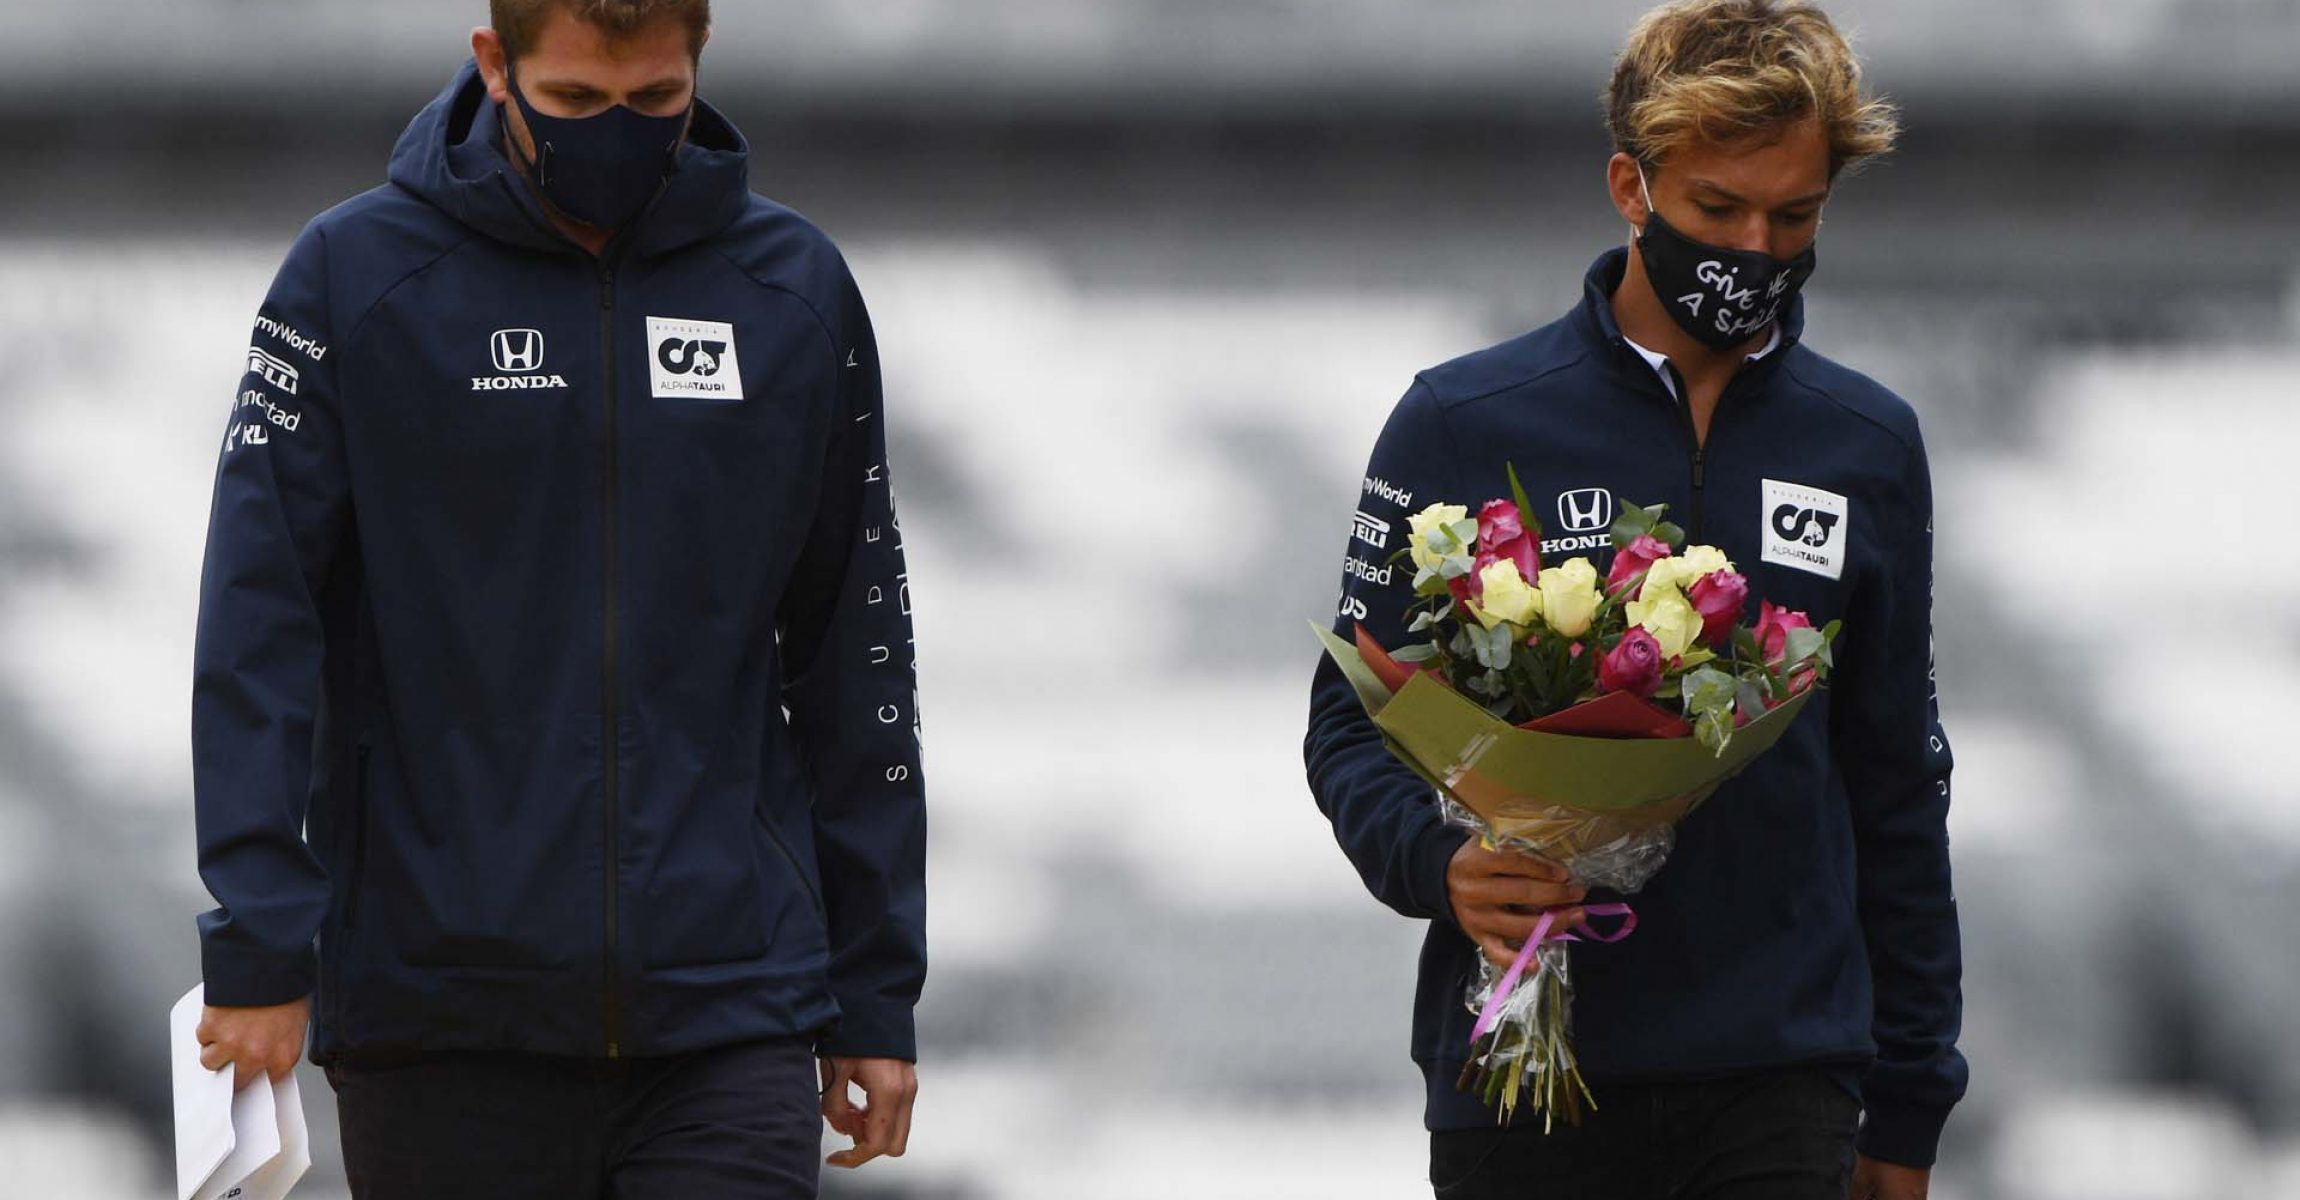 SPA, BELGIUM - AUGUST 27: Pierre Gasly of France and Scuderia AlphaTauri carries flowers to leave at the side of the track in tribute to the late Formula 2 driver Anthoine Hubert, who passed at this race in 2019 during previews ahead of the F1 Grand Prix of Belgium at Circuit de Spa-Francorchamps on August 27, 2020 in Spa, Belgium. (Photo by Rudy Carezzevoli/Getty Images) // Getty Images / Red Bull Content Pool  // SI202008270295 // Usage for editorial use only //